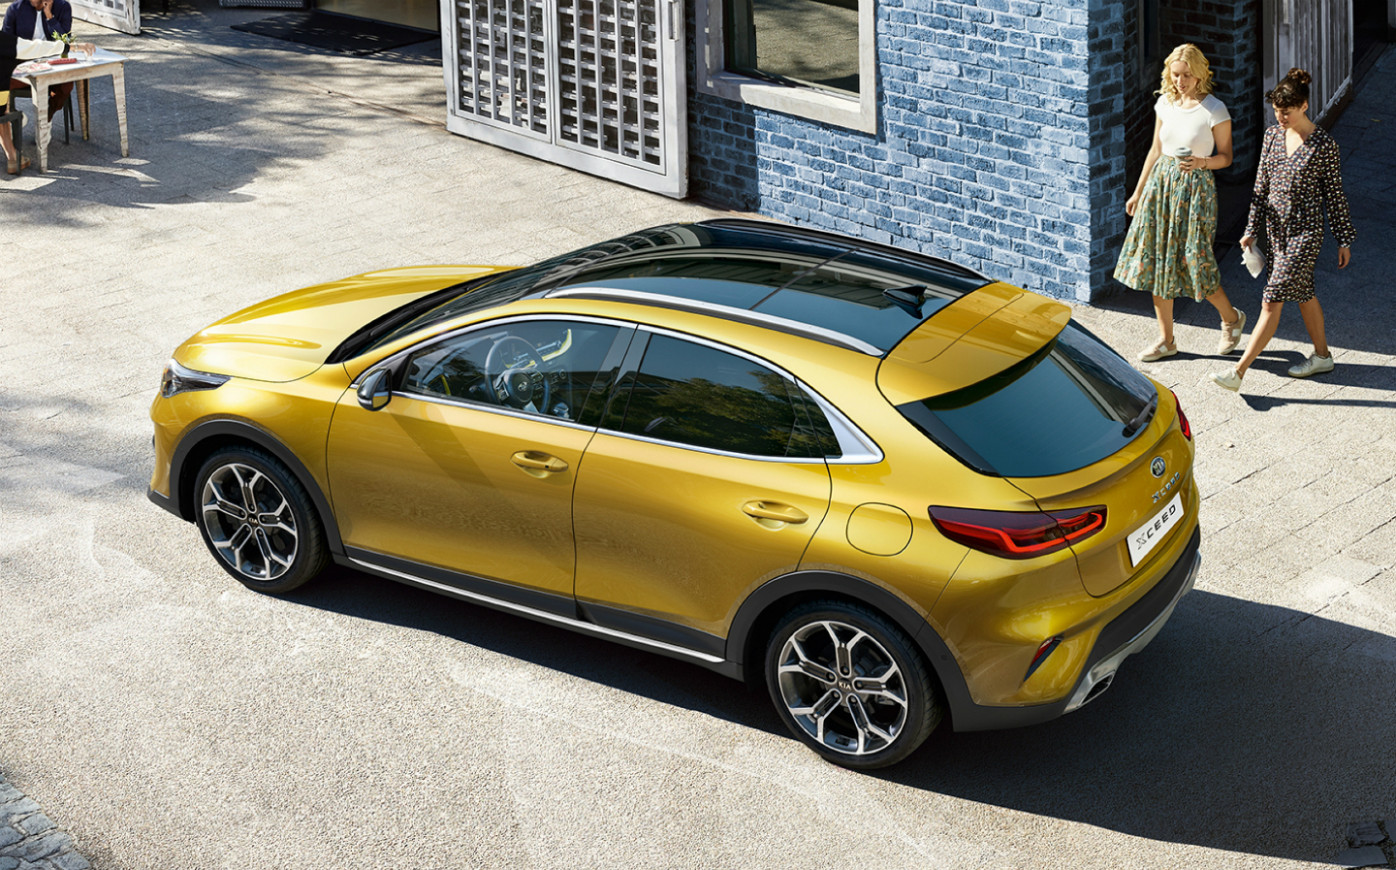 10 Kia XCeed: prices, performance, interior space and release date